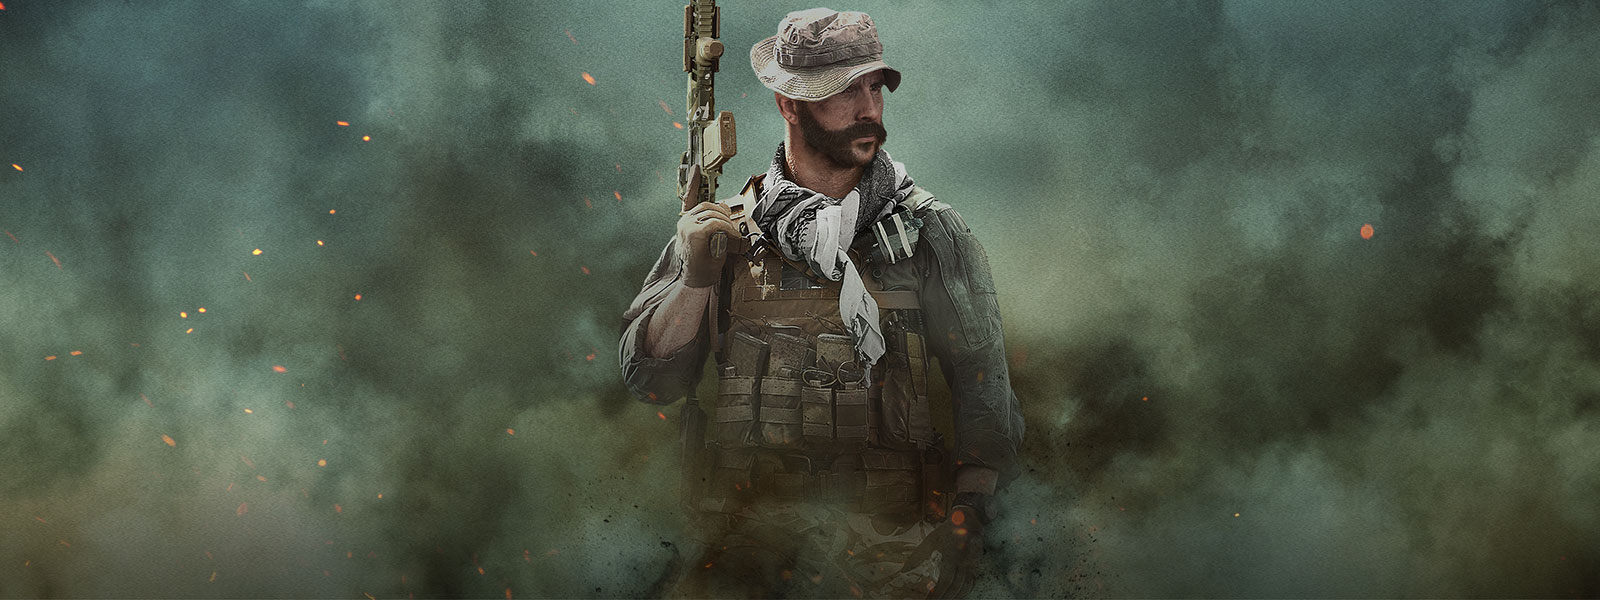 Captain Price from Call of Duty: Modern Warfare in smoke